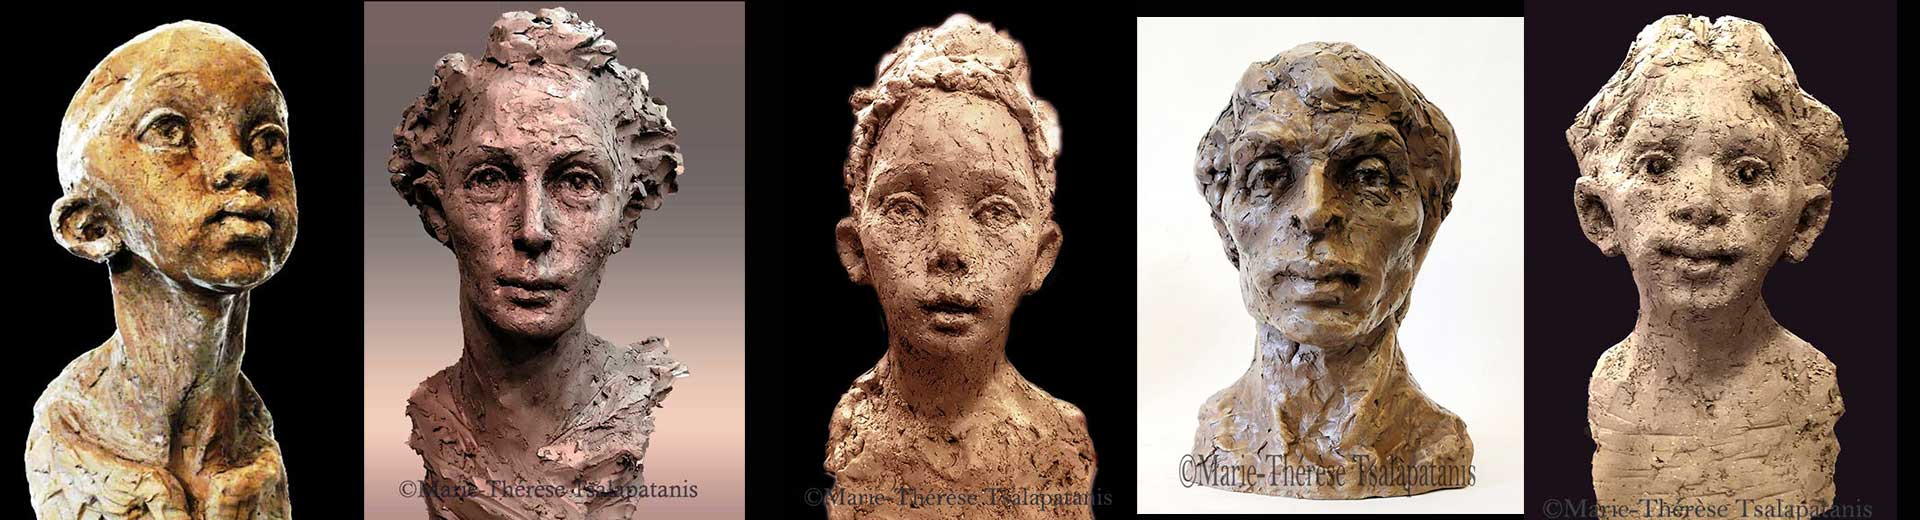 sculpture-marie-therese-tsalapatanis-portraits-ban